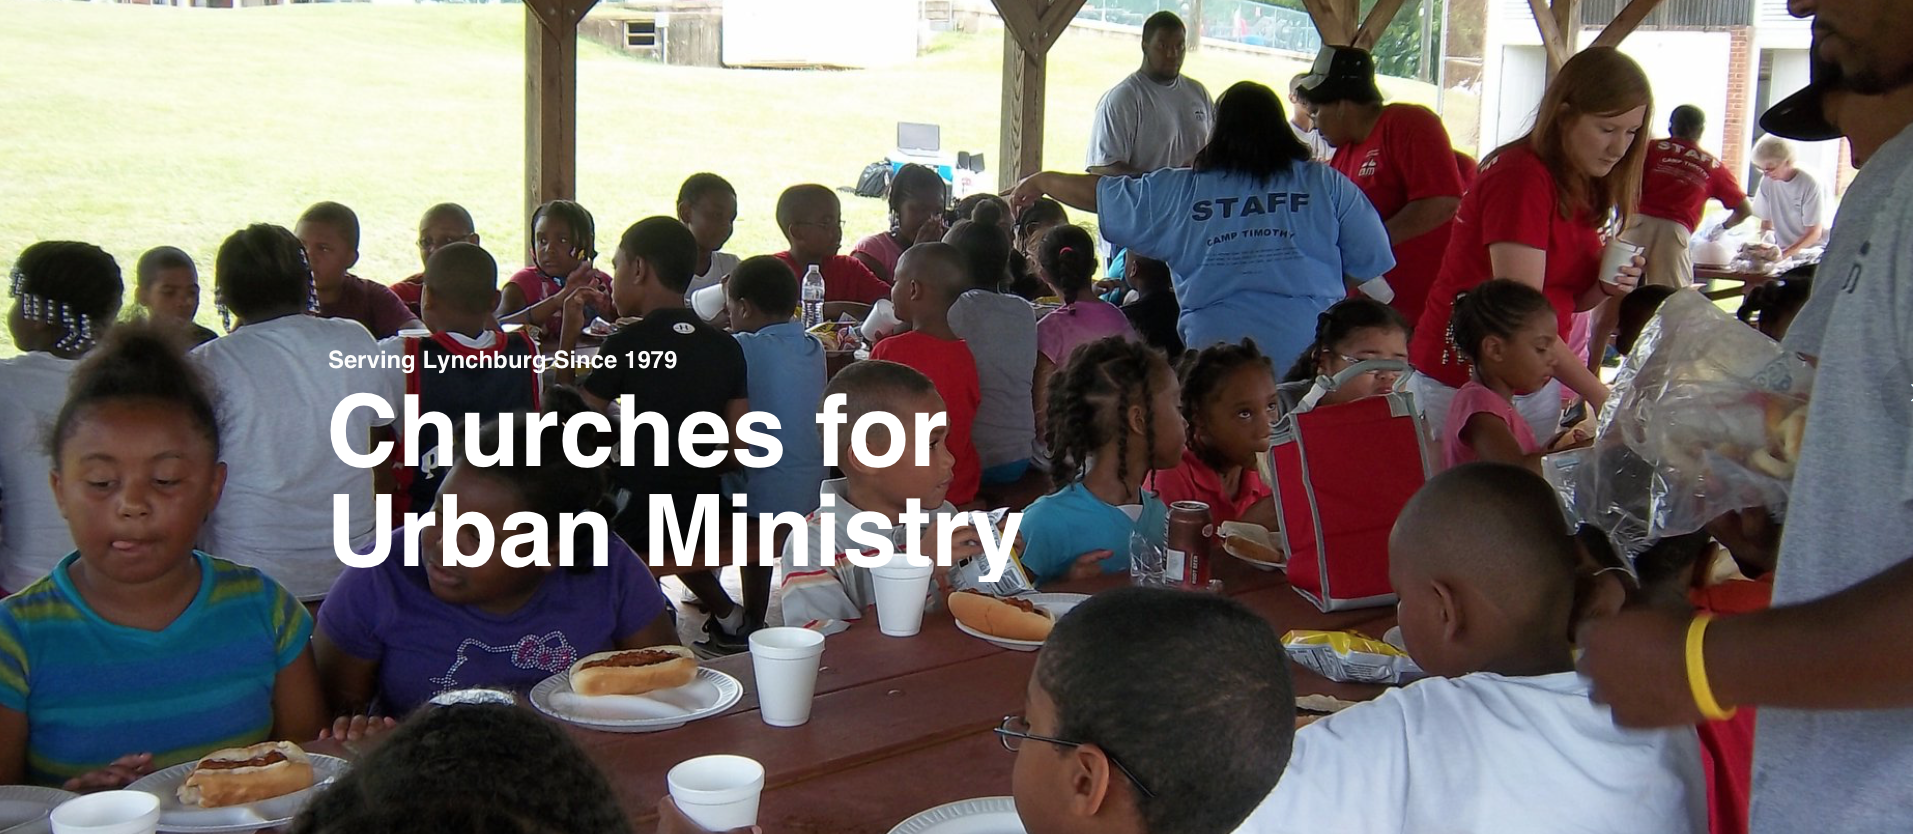 churches for urban ministry pictures